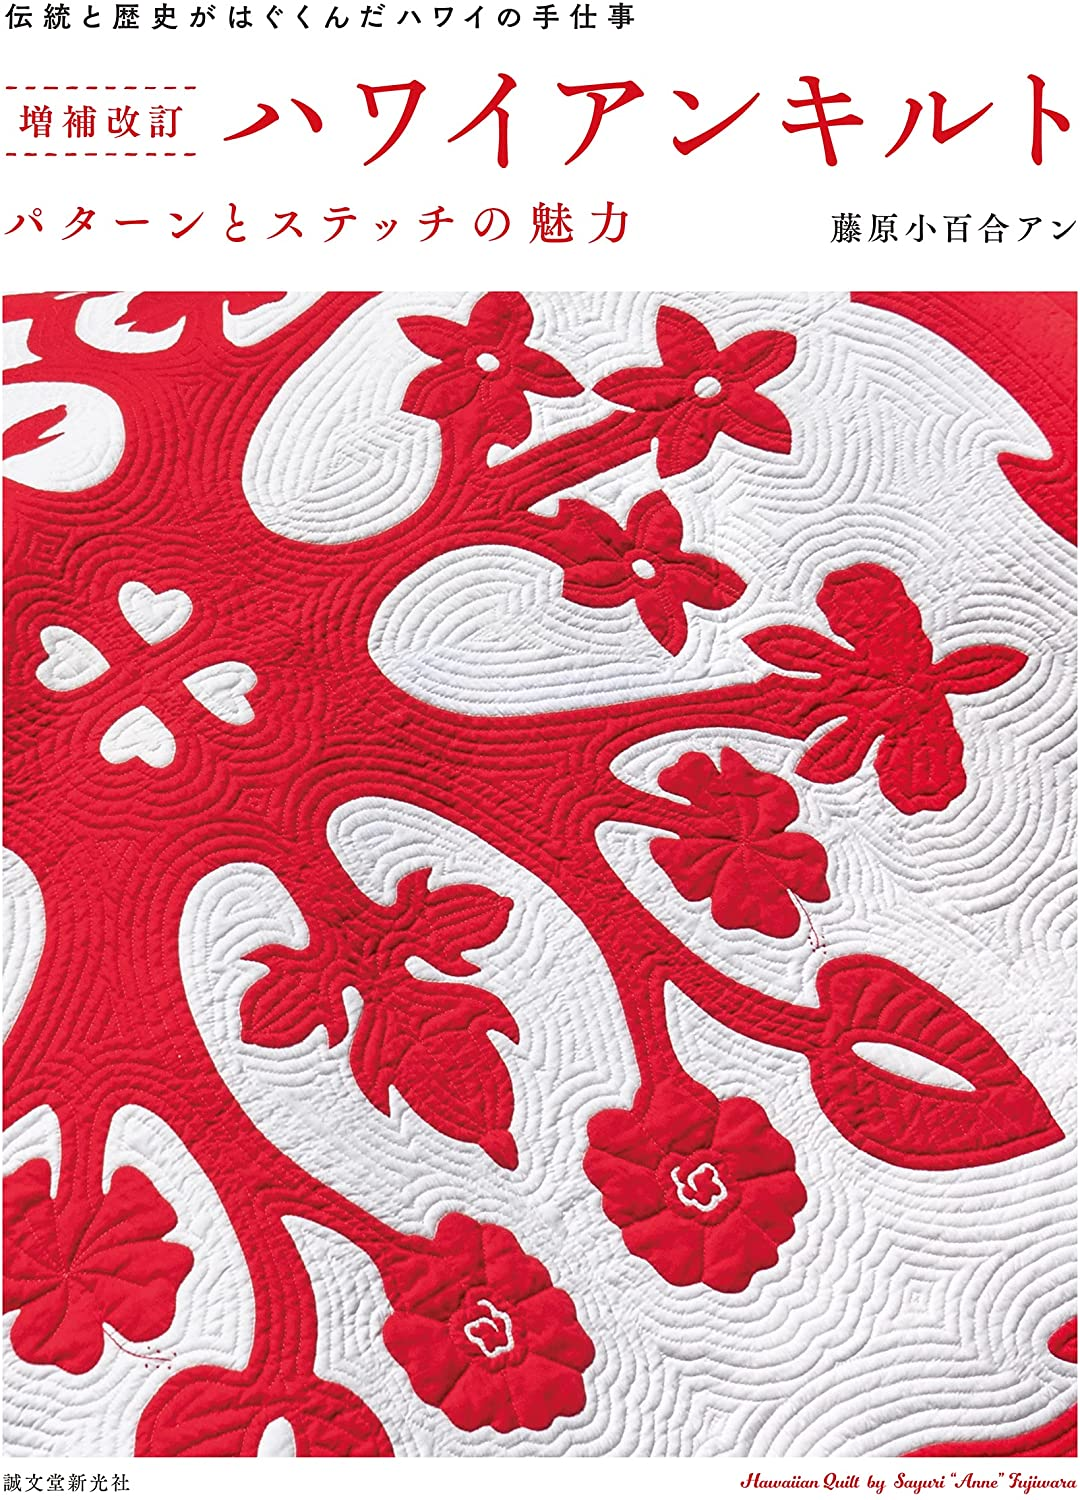 Augmented and Revised Hawaiian Quilt Patterns and Stitches Charm